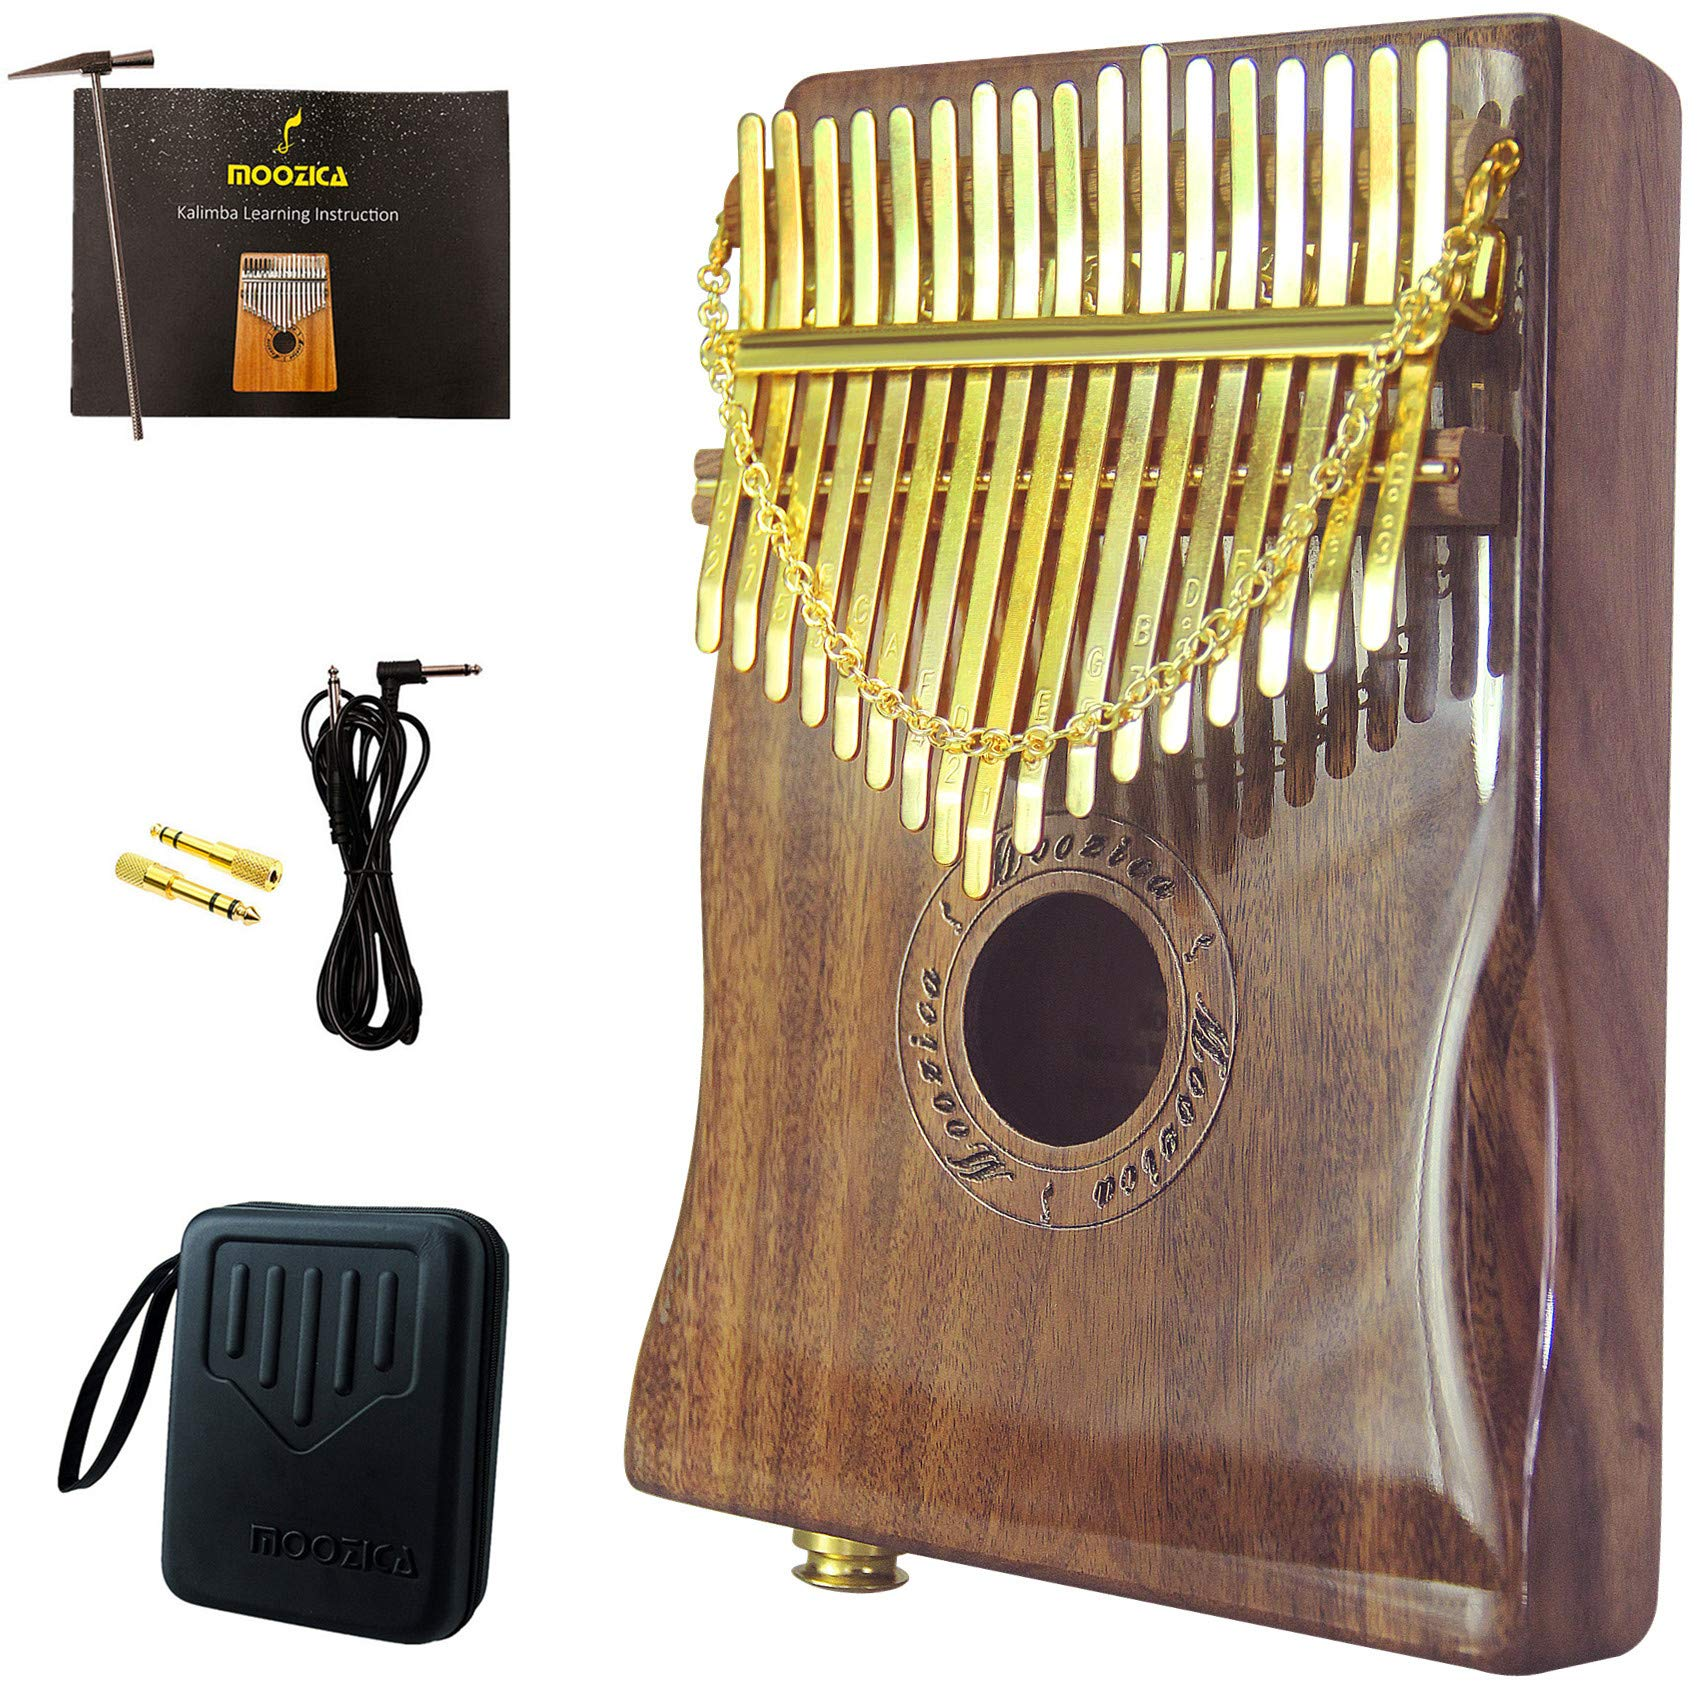 Moozica 17-Key EQ Kalimba, Electric Finger Thumb Piano Built-in Pickup With 6.35mm Audio Interface and Professional Kalimba Case (Koa-EQ(Piano Lacquer)) by Moozica